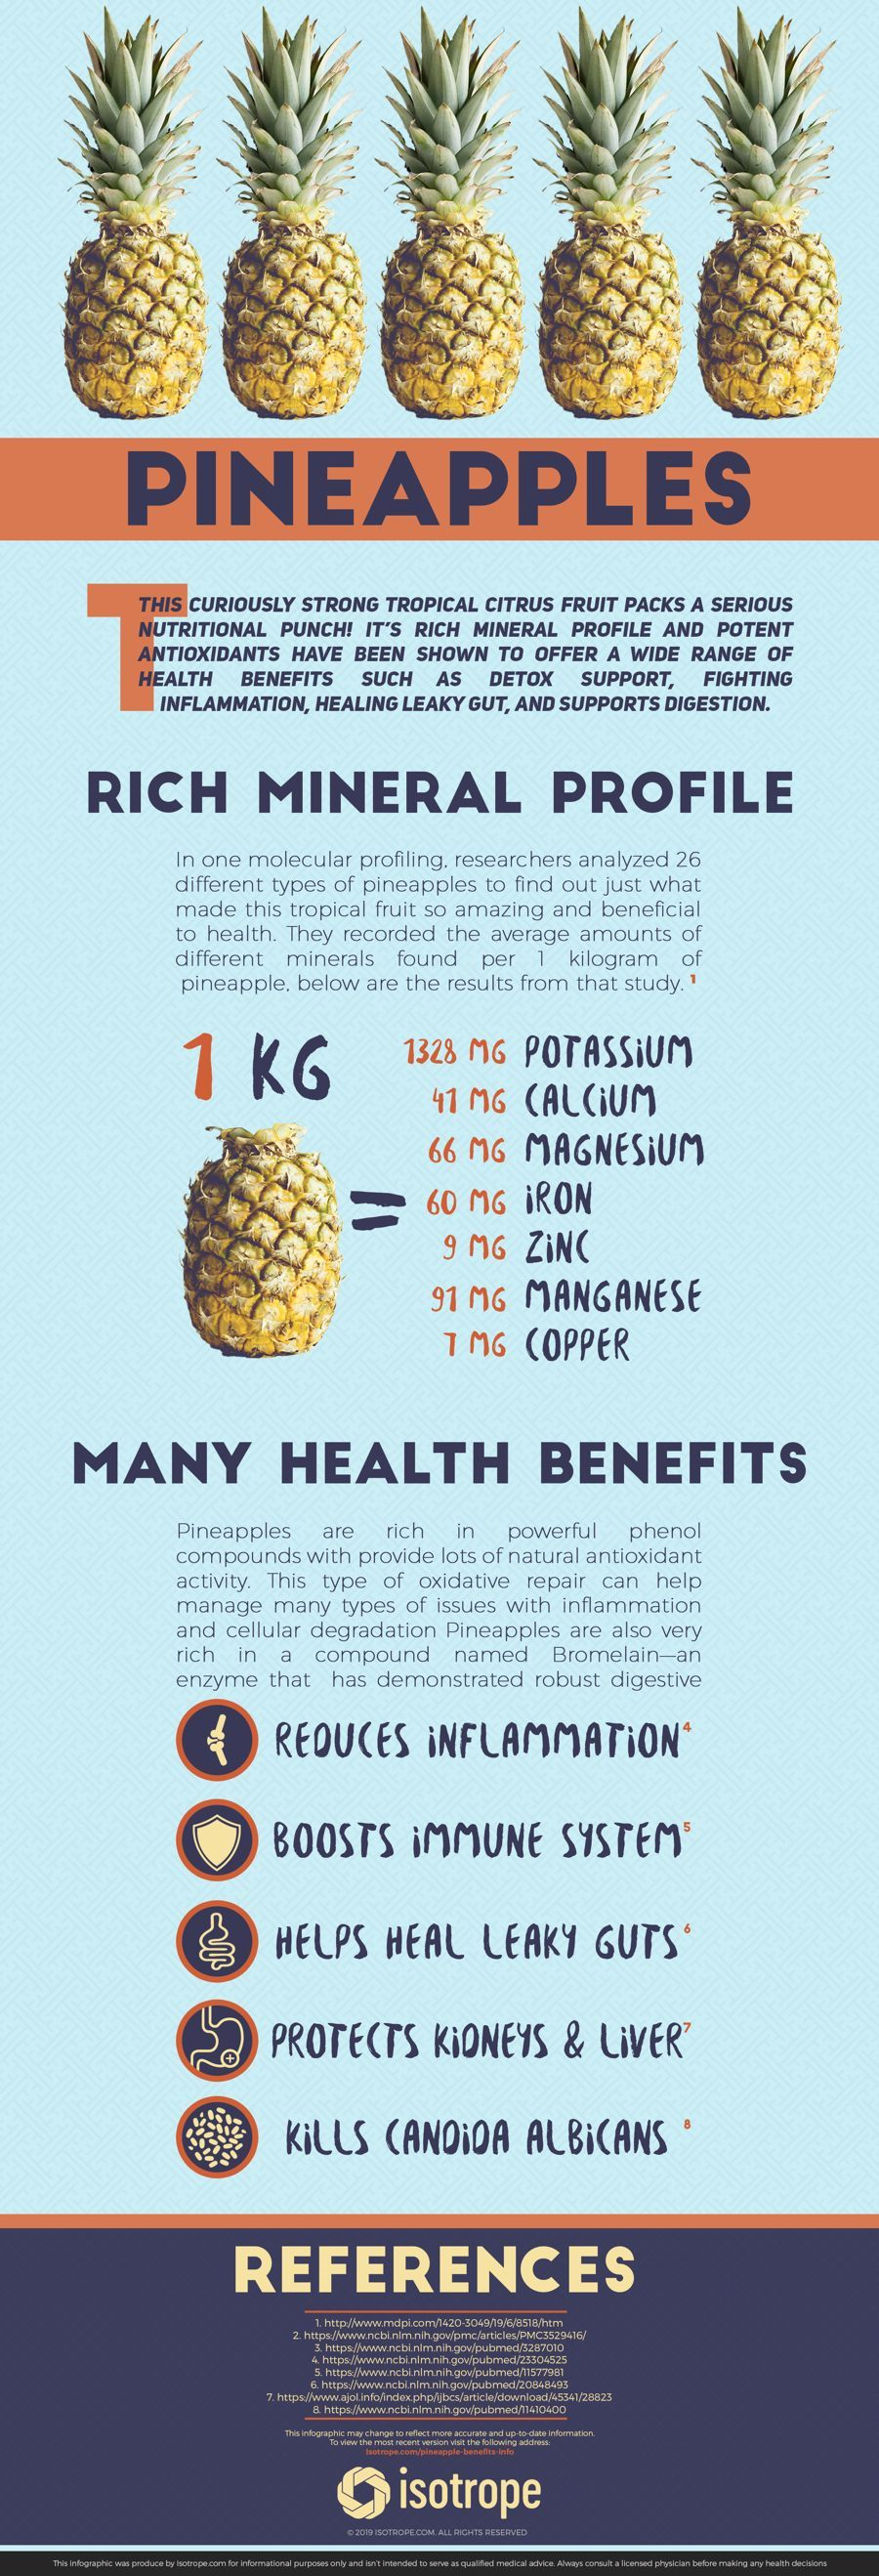 Pineapple Helps To Improve Digestive Health